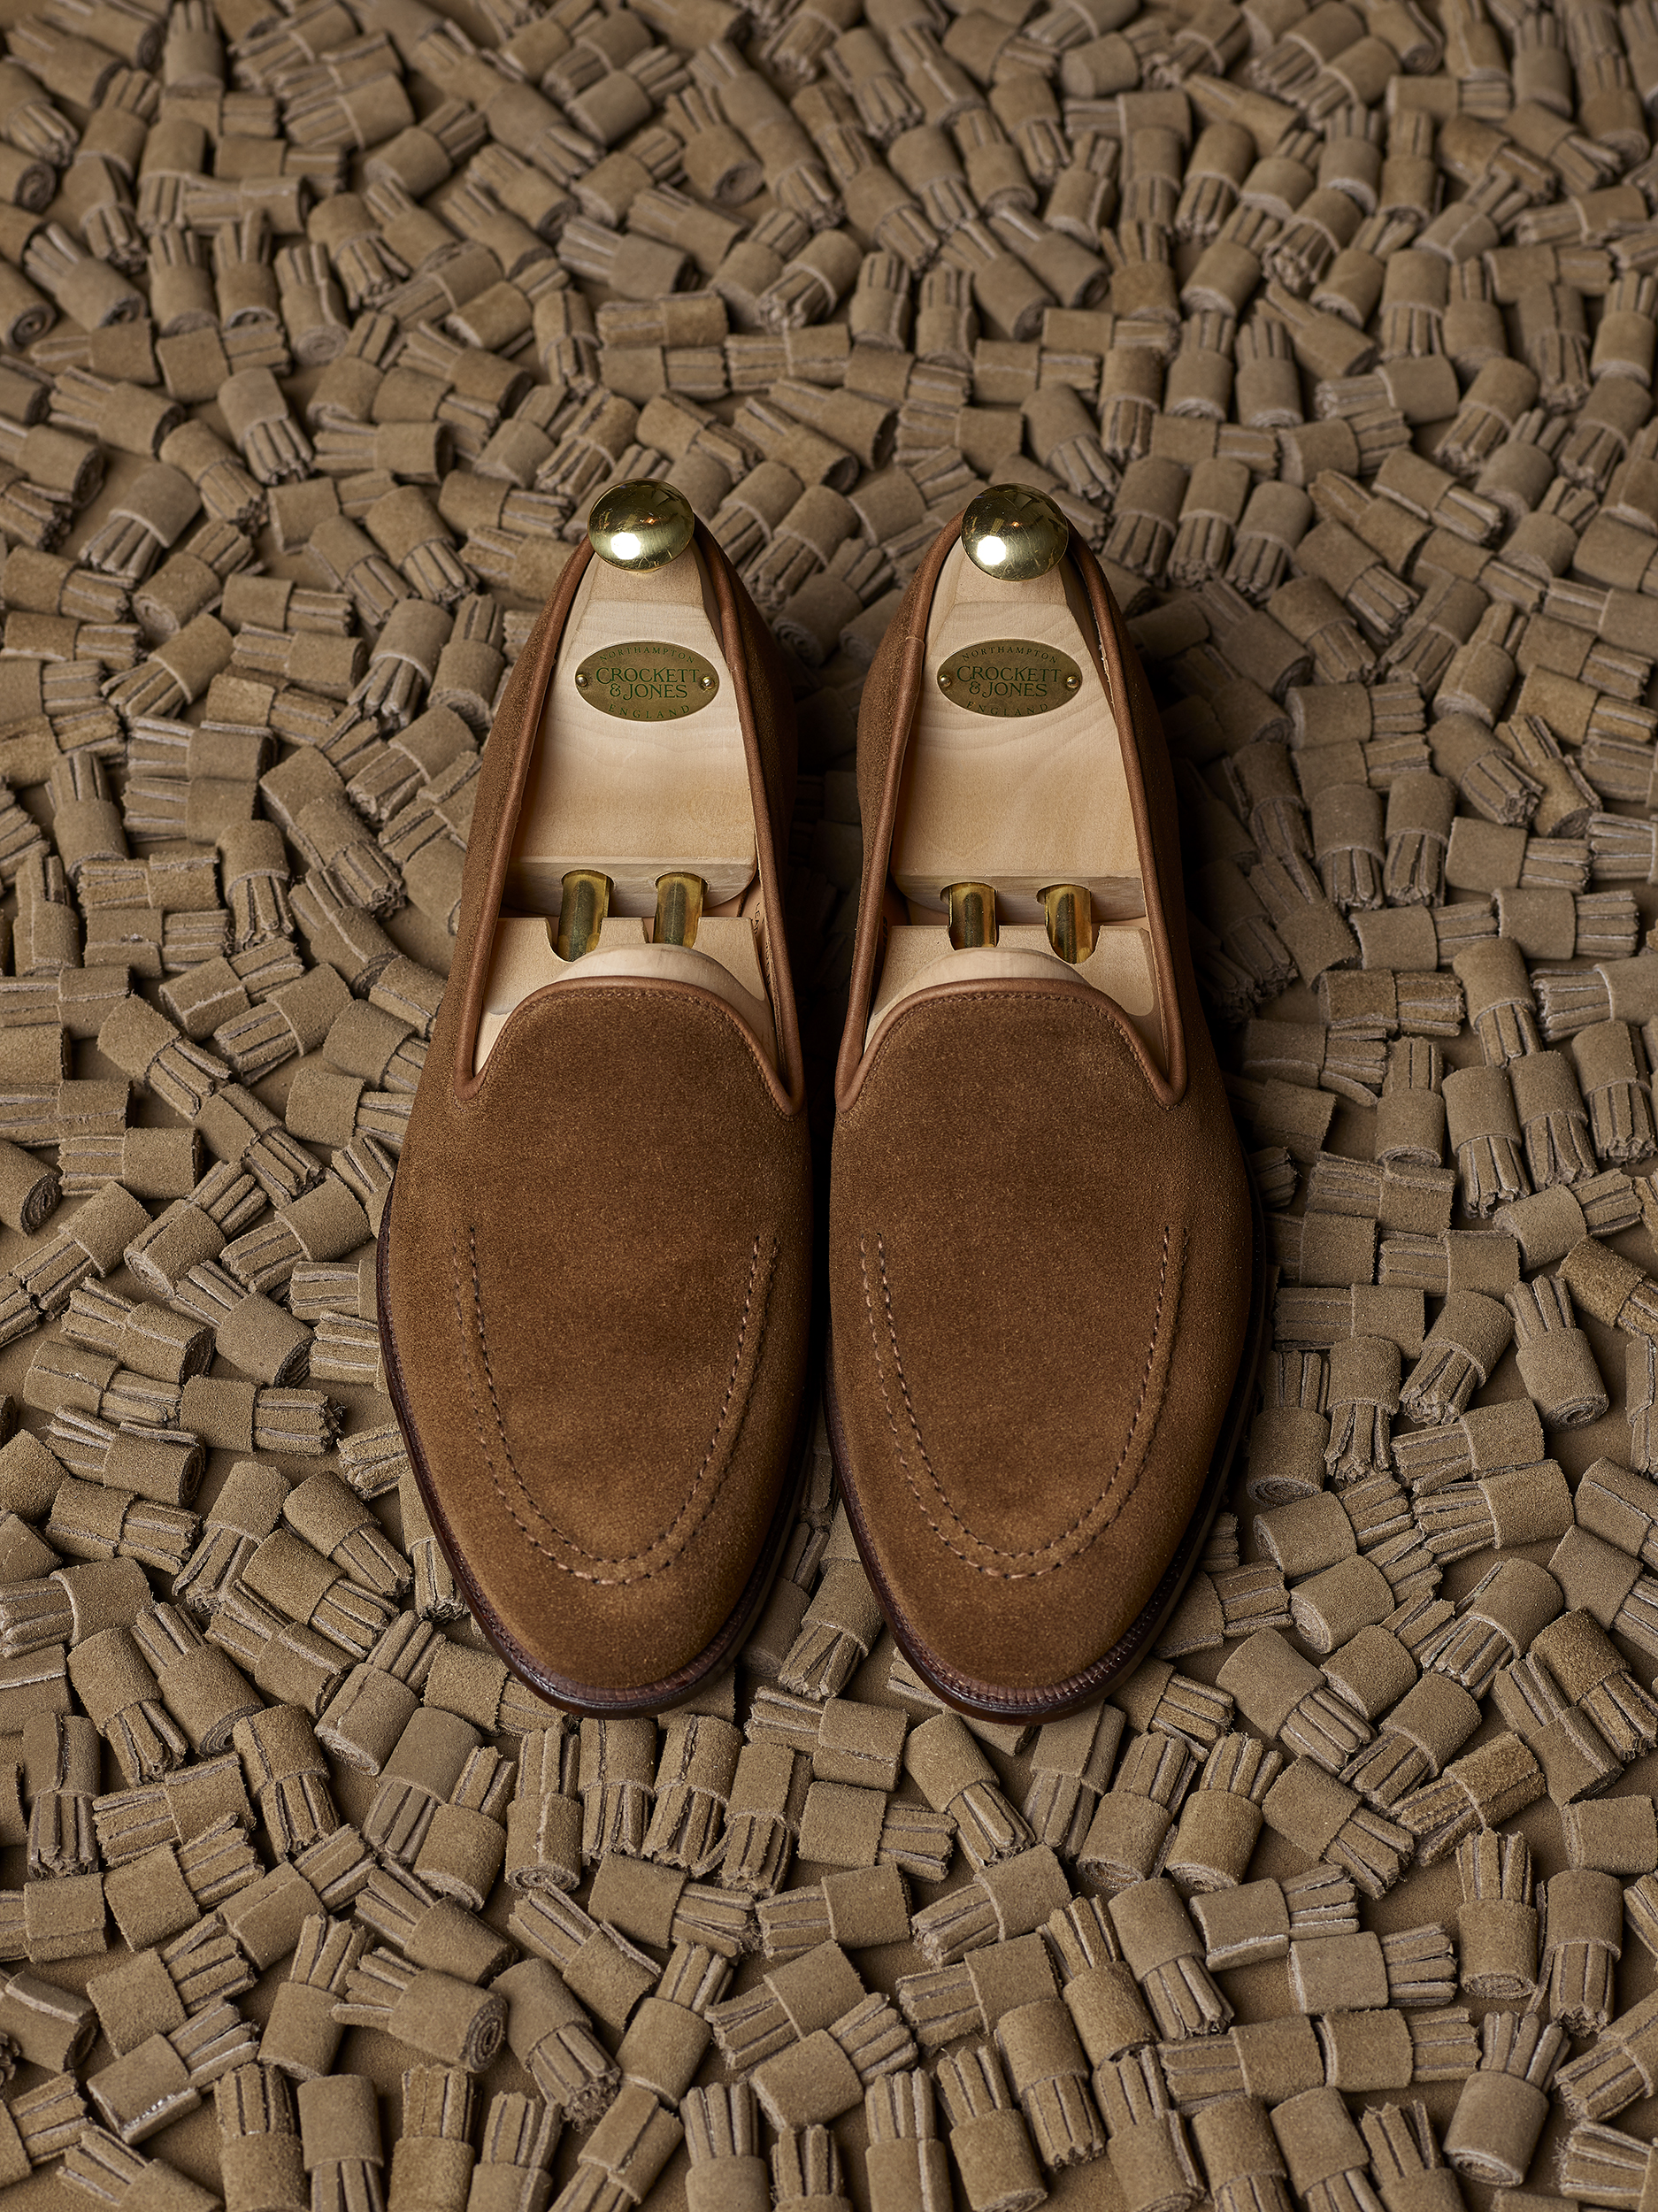 Crockett & Jones Camden - Snuff Suede (1).jpg